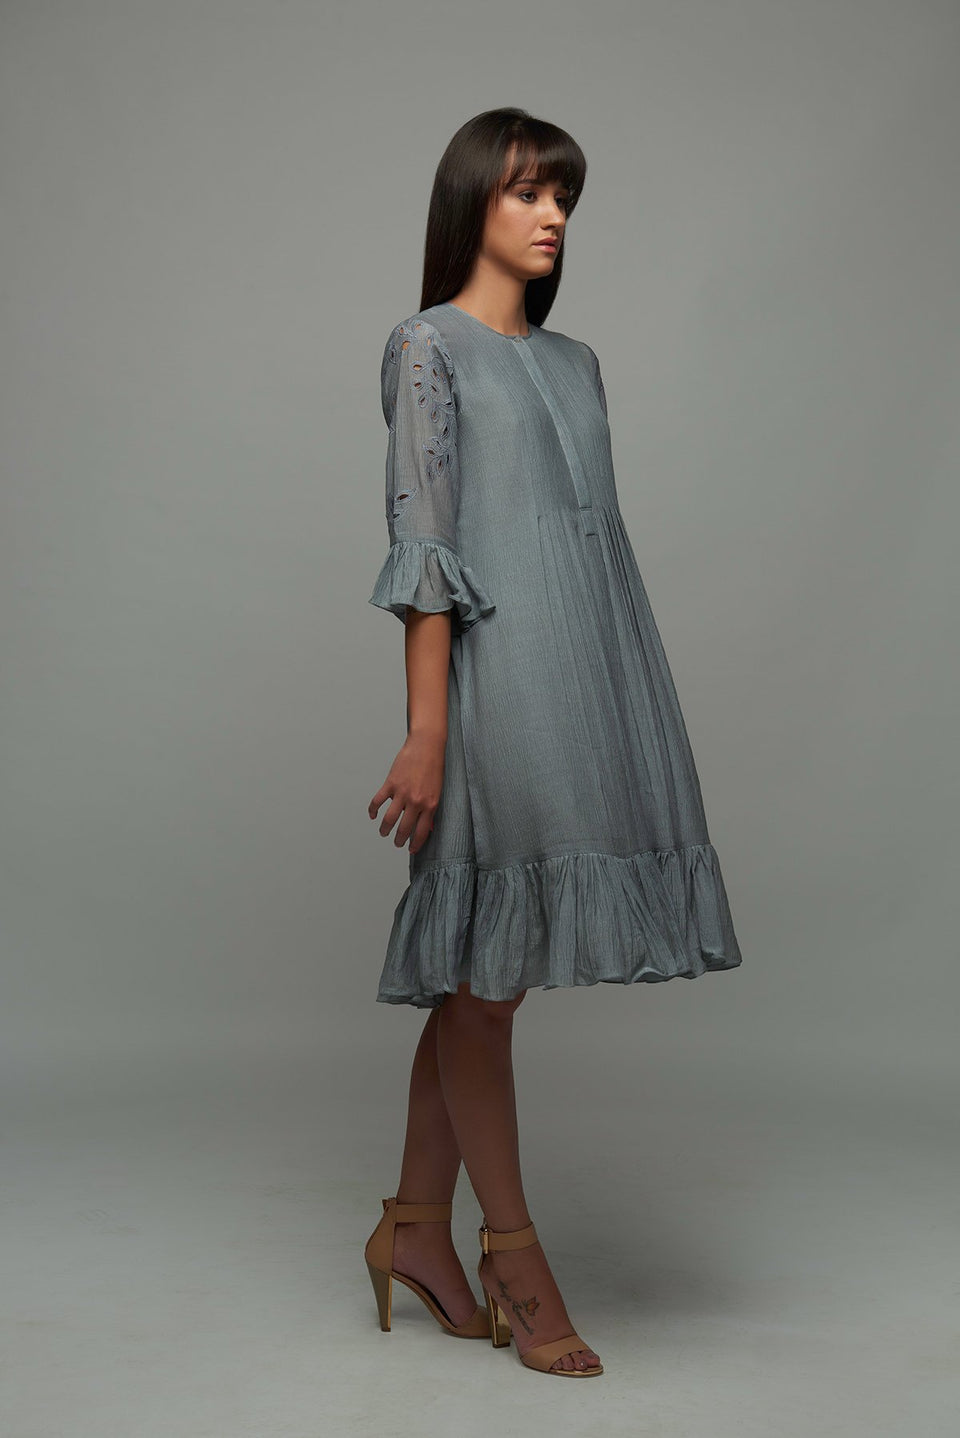 The Cloud Dress in Grey